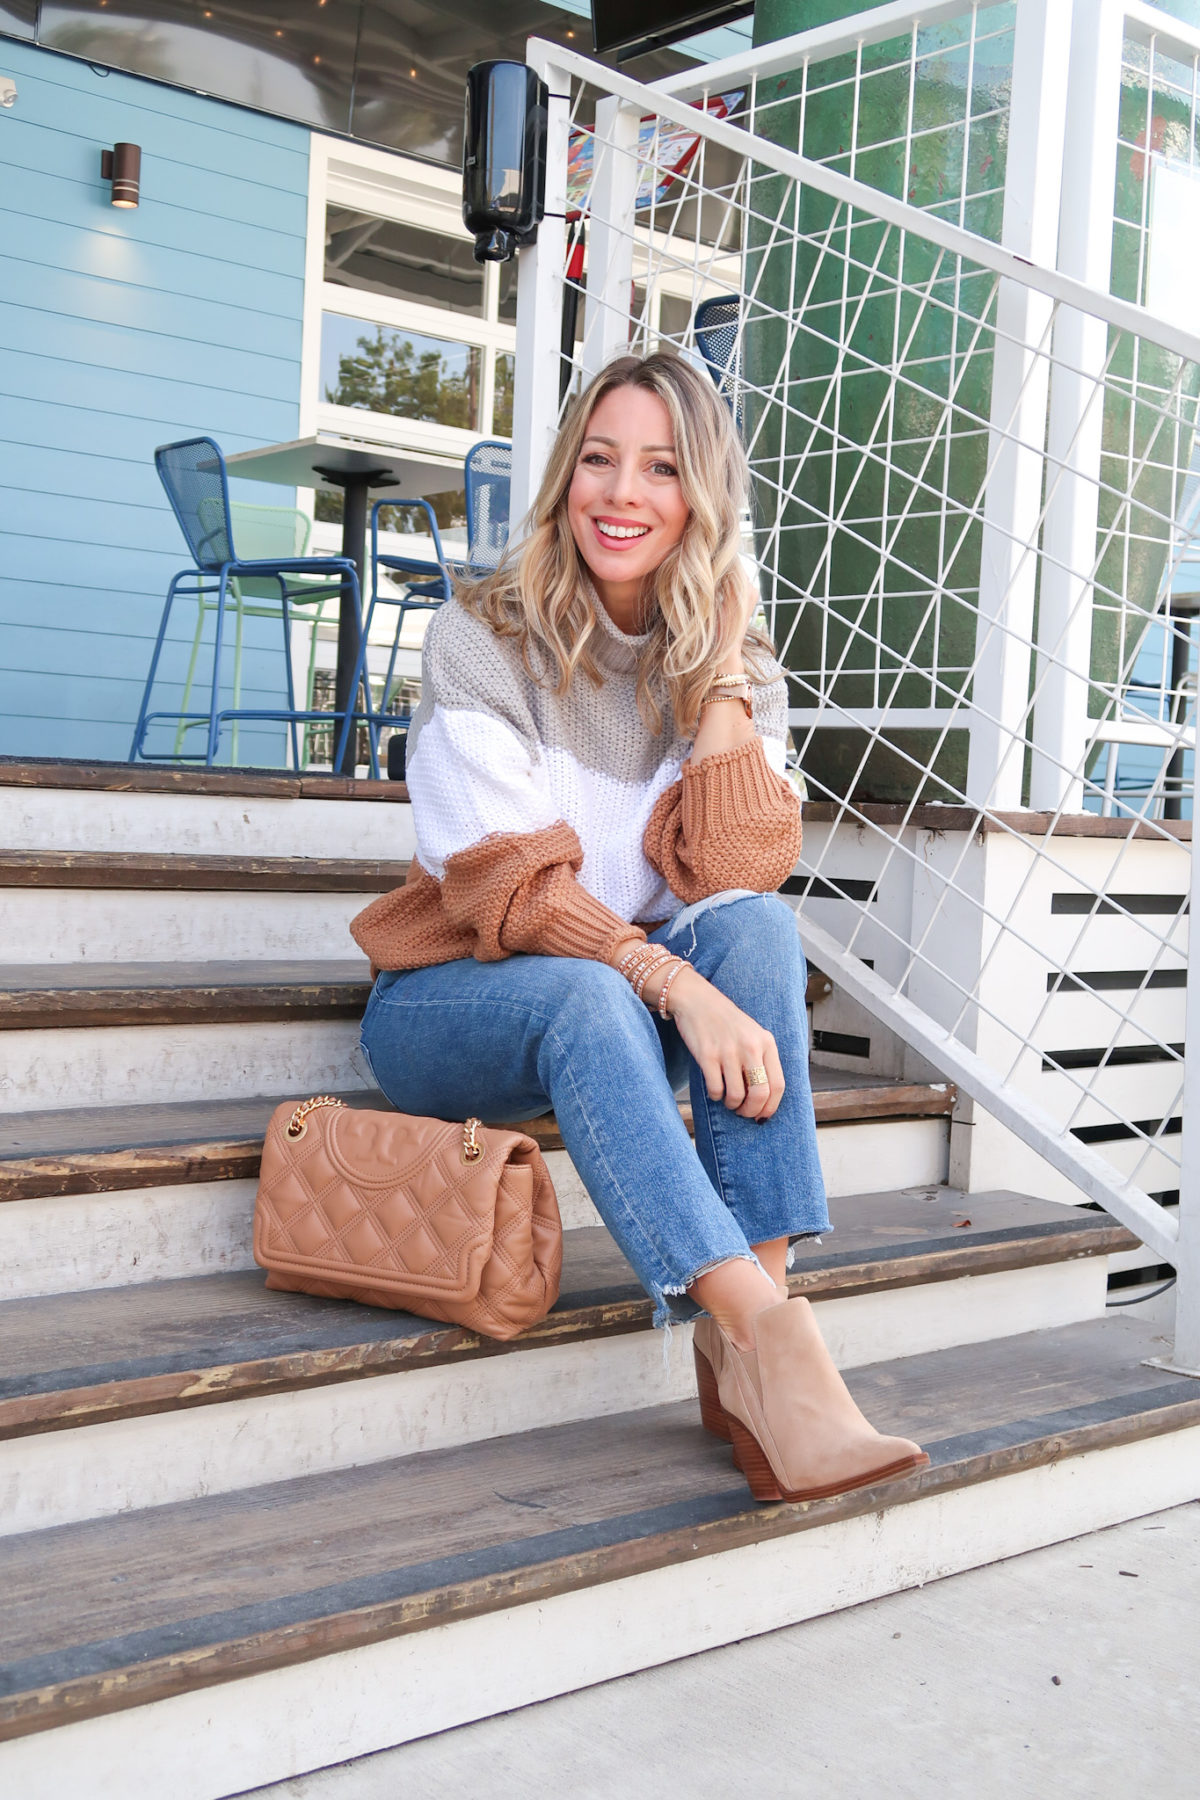 Outfits Lately, Colorblock Sweater, Jeans, Booties, Crossbody